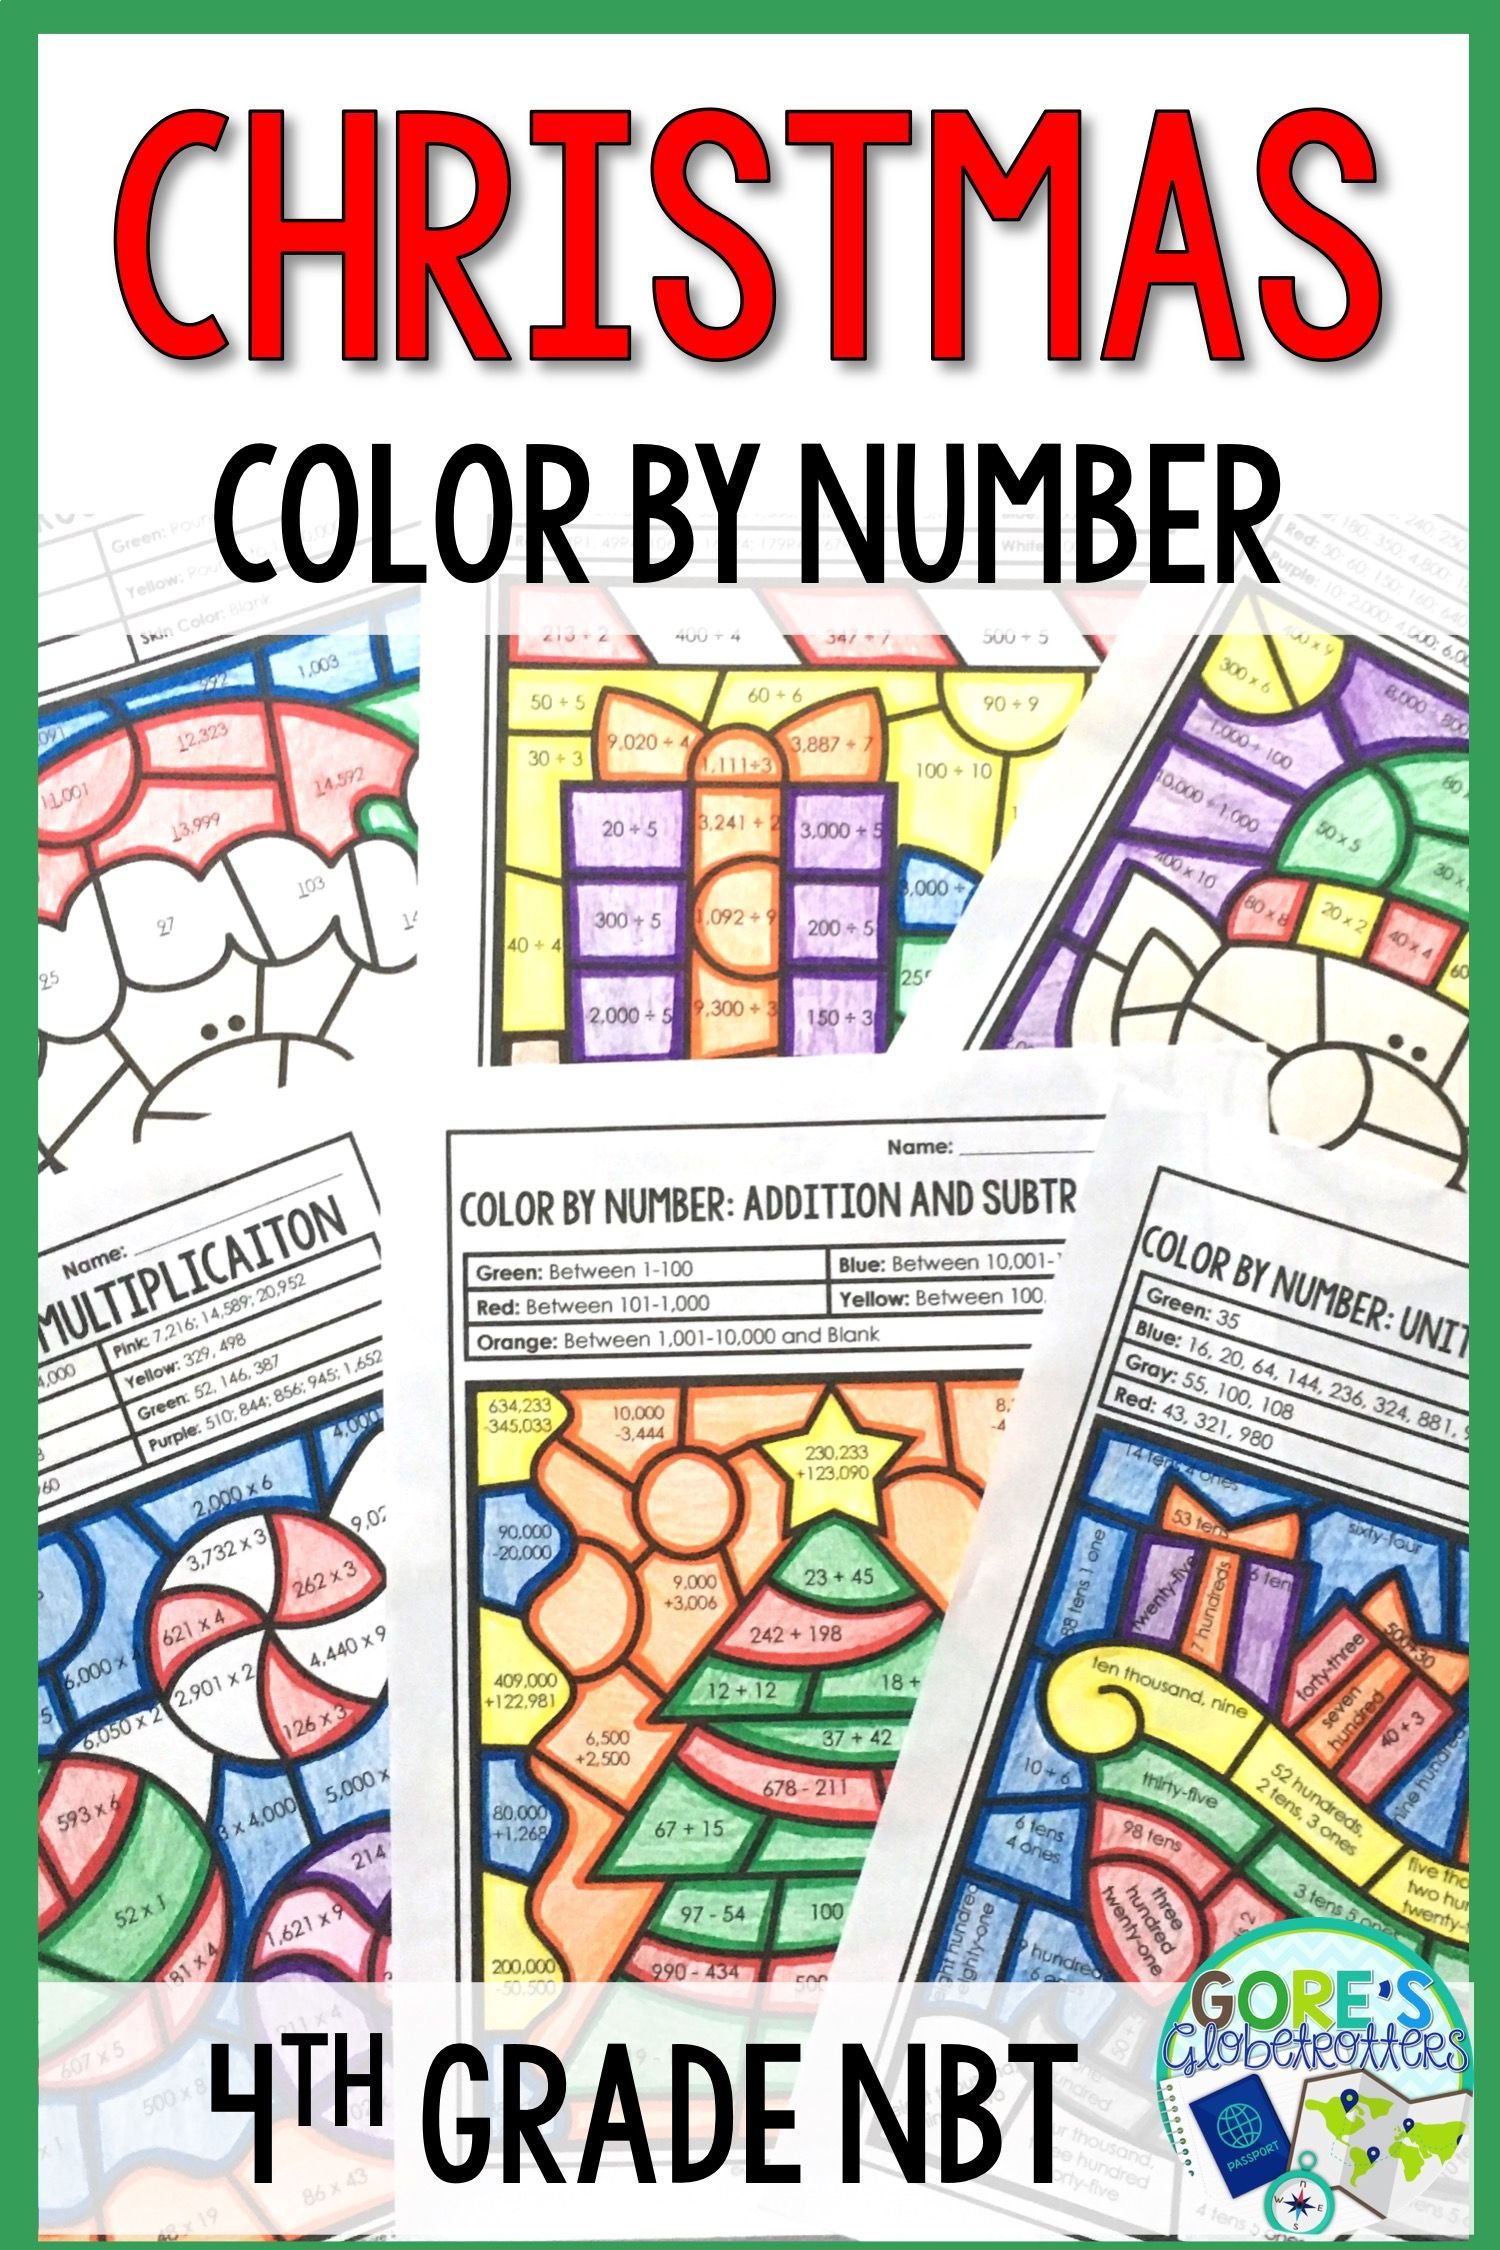 Christmas Math Worksheets Color By Number 4th Grade Christmas Math Christmas Math Worksheets Christmas Math Activities [ 2250 x 1500 Pixel ]